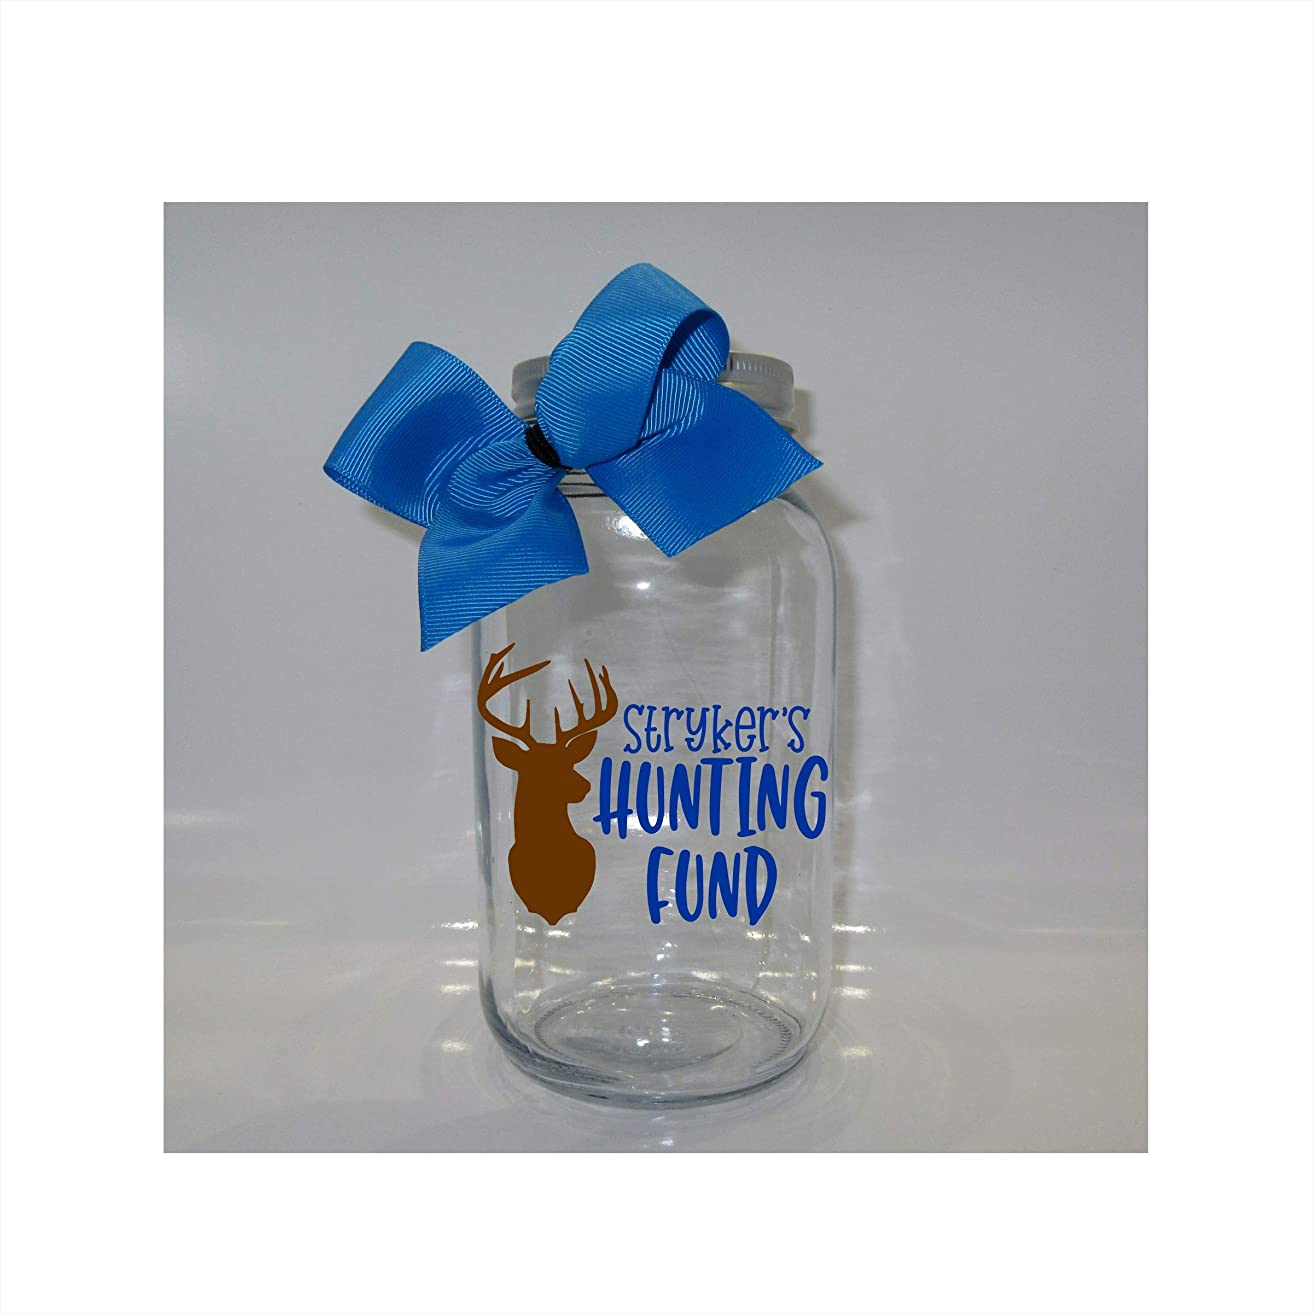 Personalized Hunting Fund Mason Jar Bank - Coin Slot Lid - Available in 3 Sizes